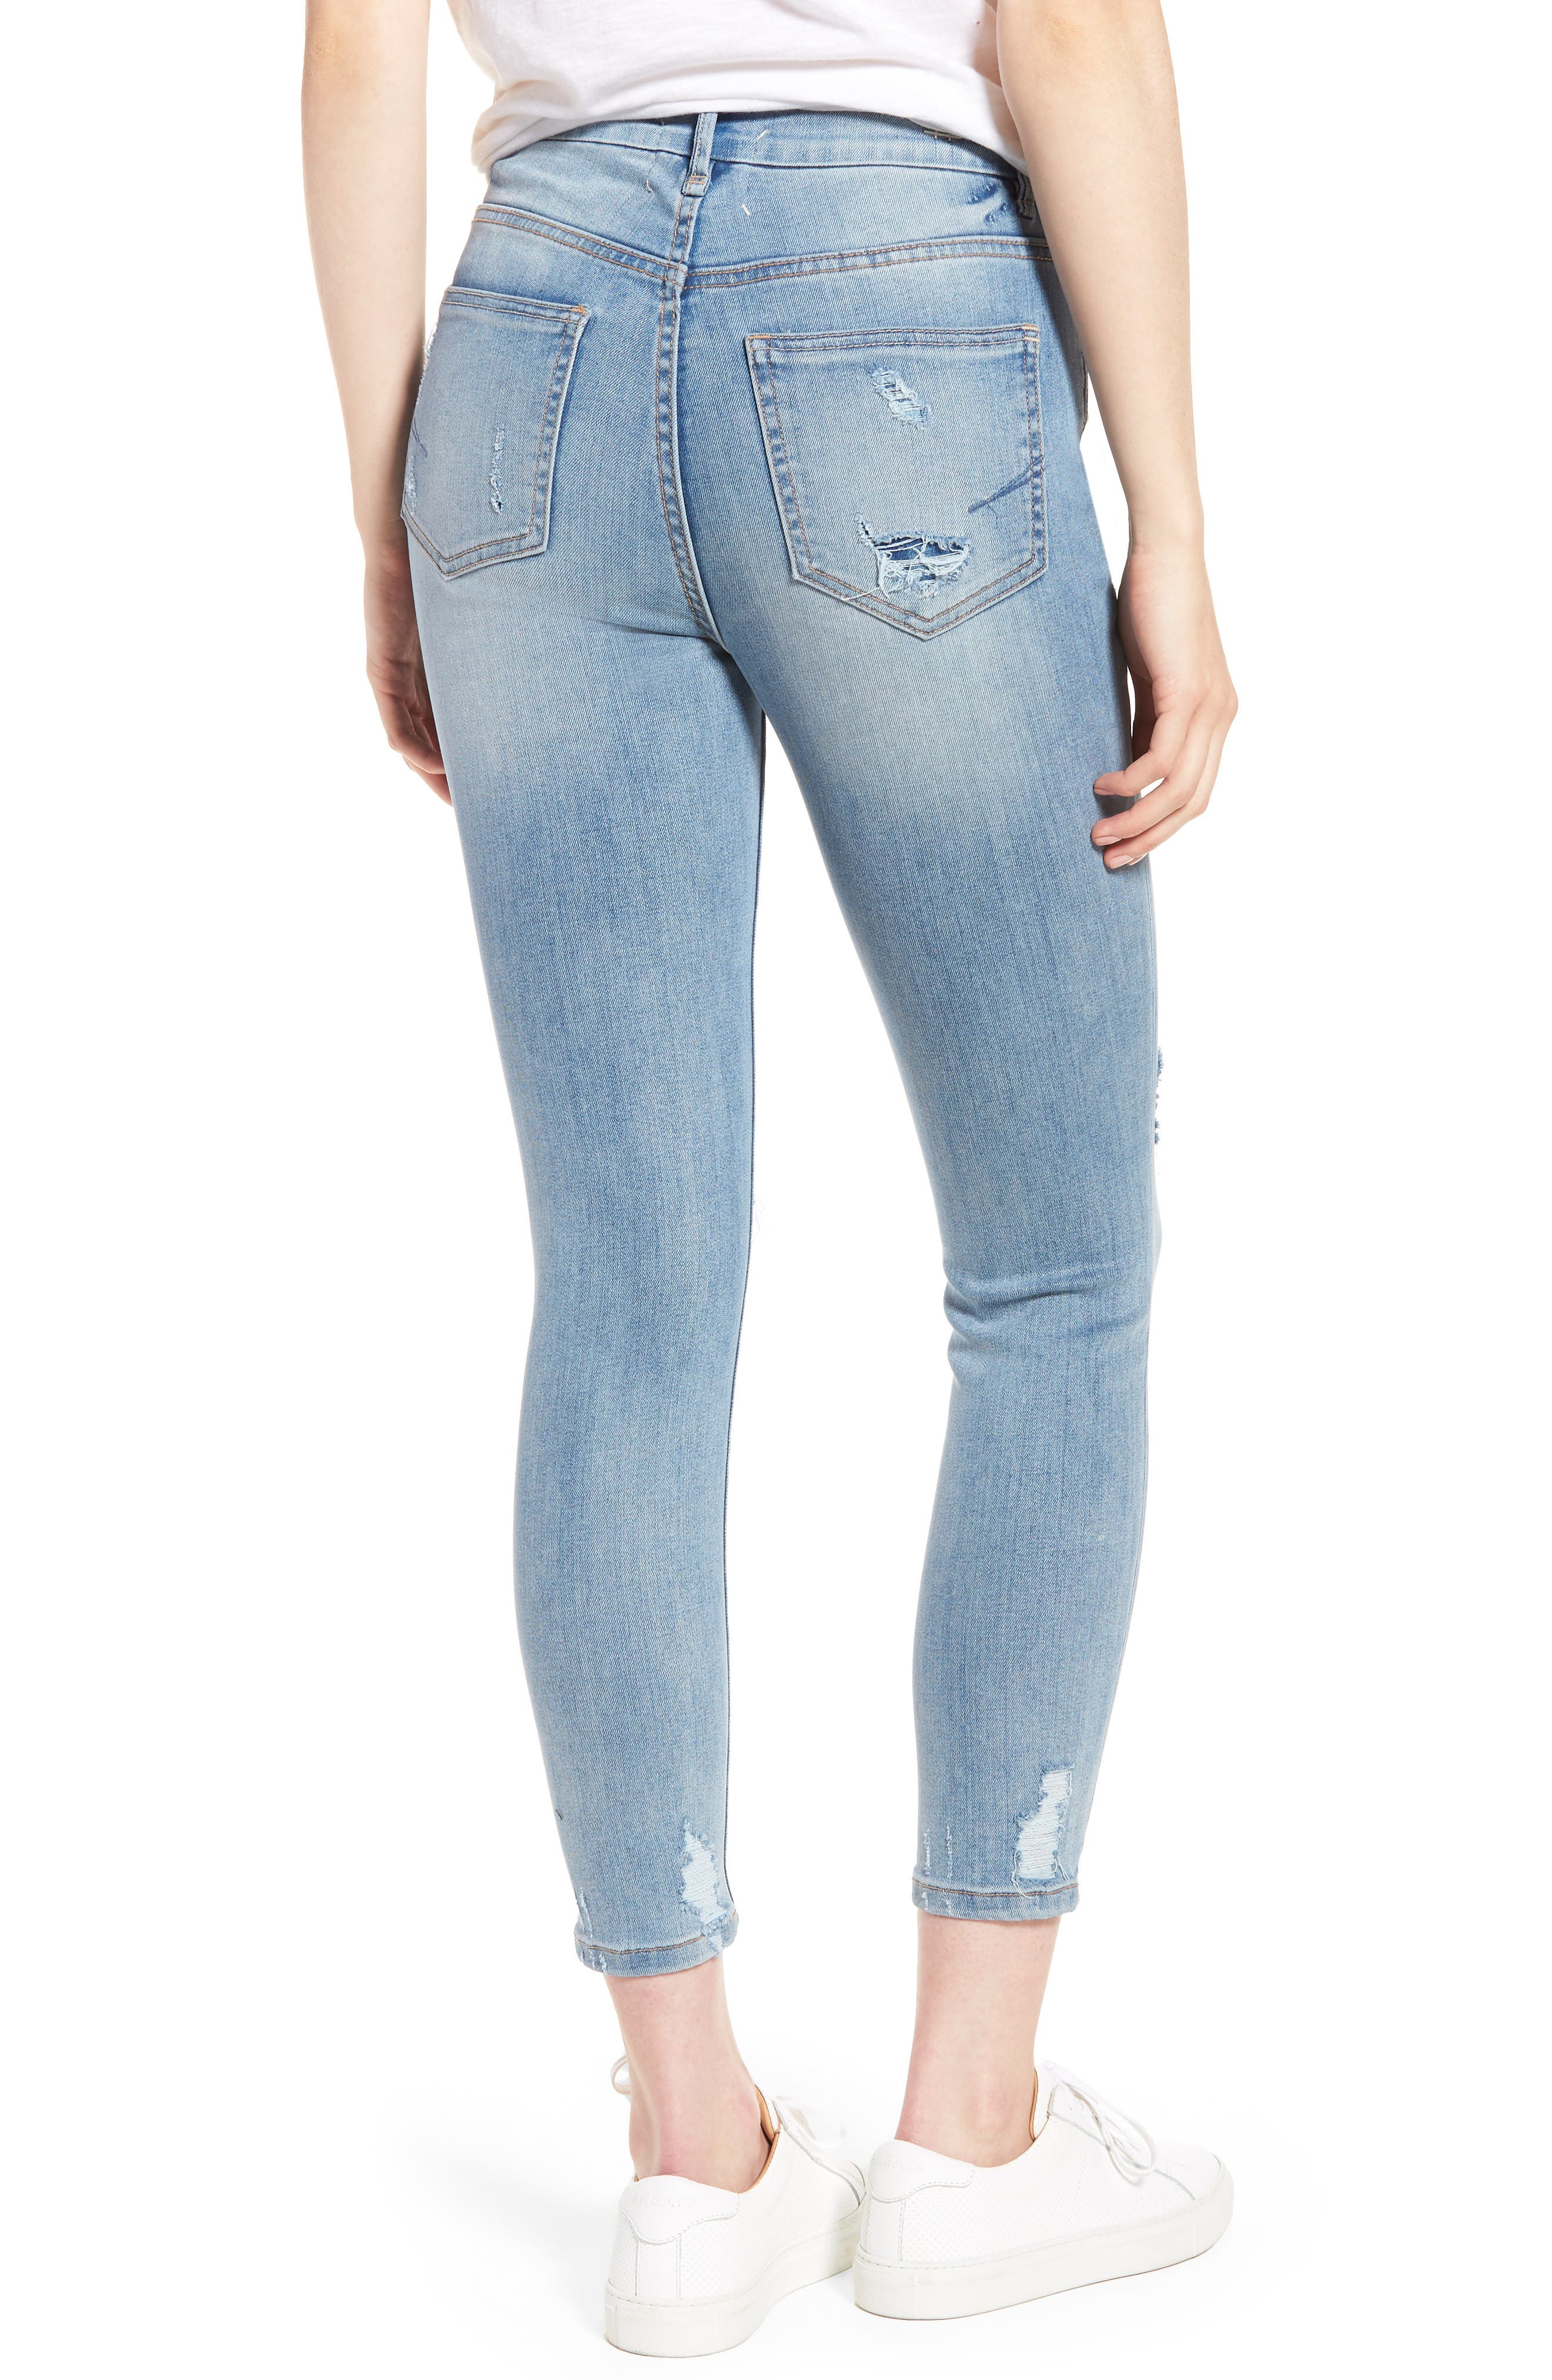 Cressa High Rise Ankle Skinny Jeans,                             Alternate thumbnail 2, color,                             Varnish